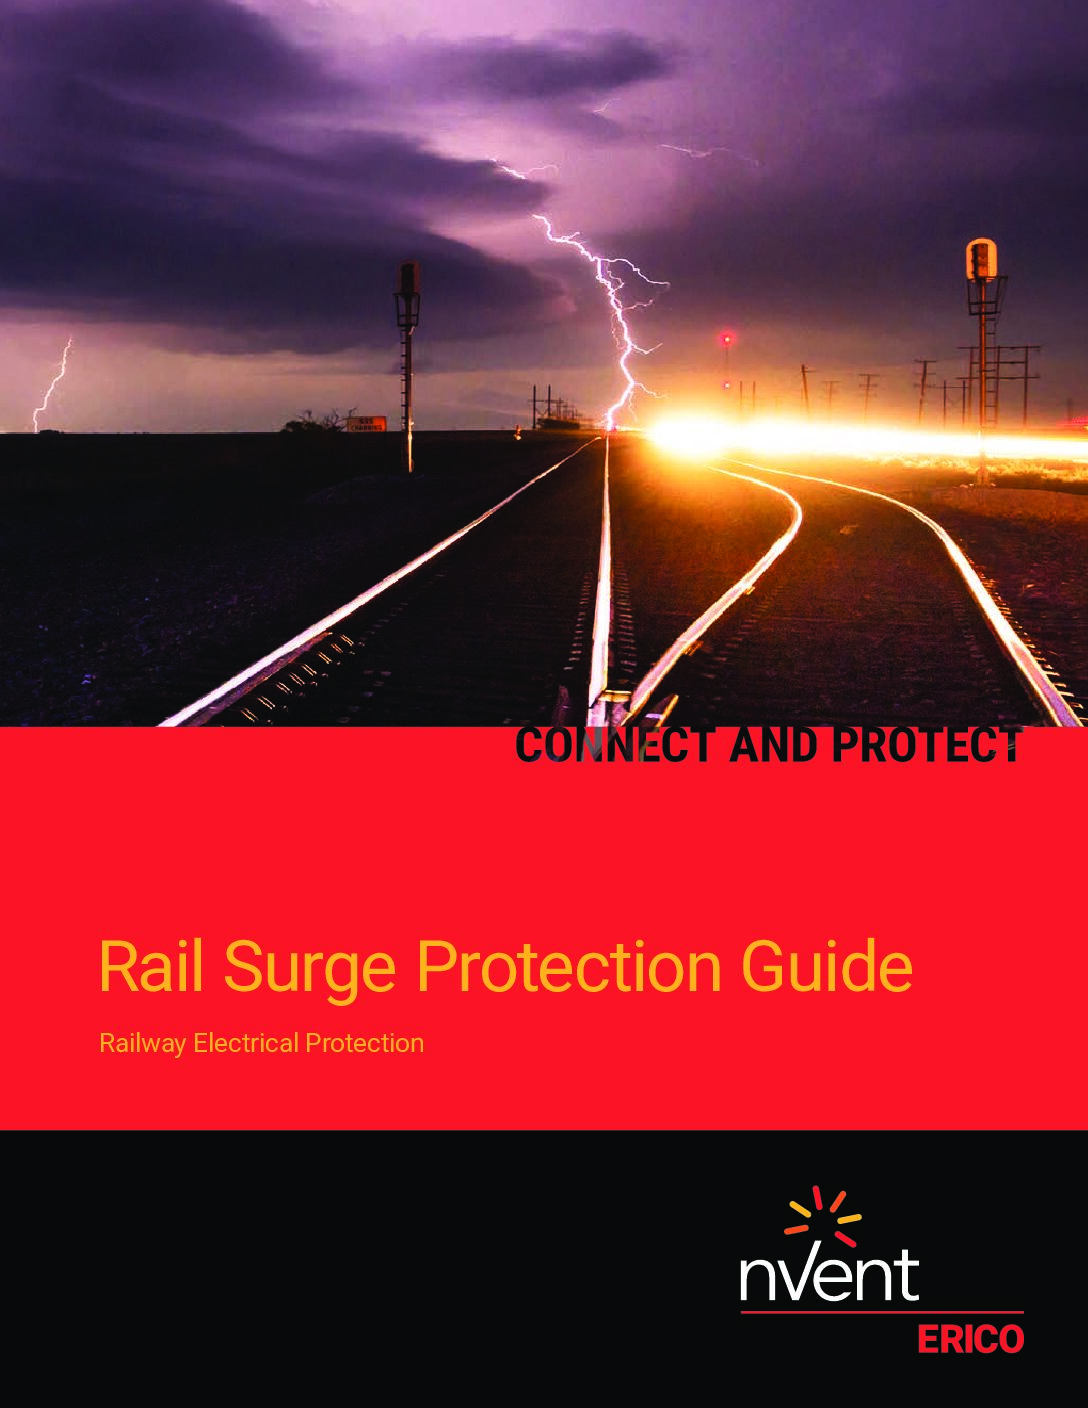 Rail Surge Protection Guide